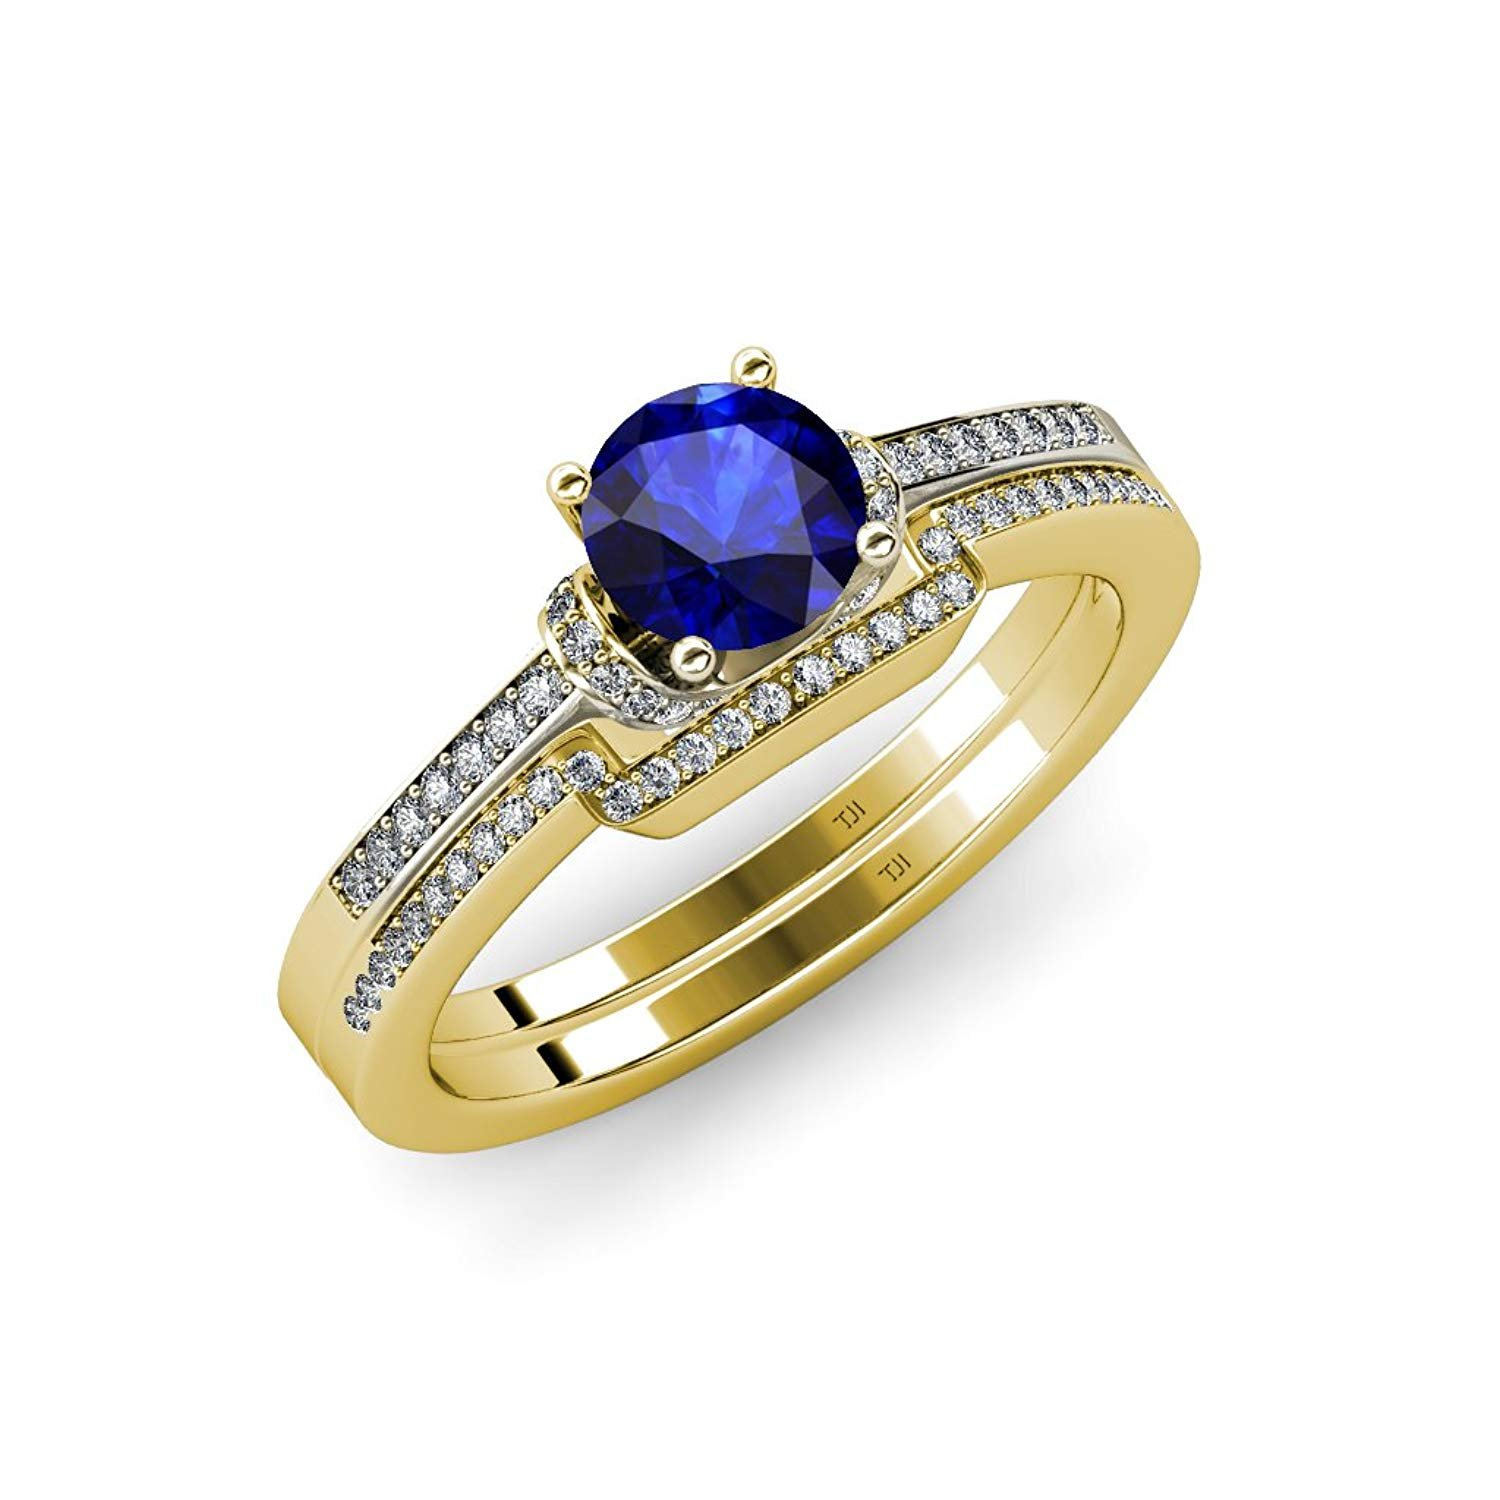 Blue Sapphire and Diamond Engagement Ring & Wedding Band Set 1.30 ct tw in 14K Yellow Gold.size 7.0 by TriJewels